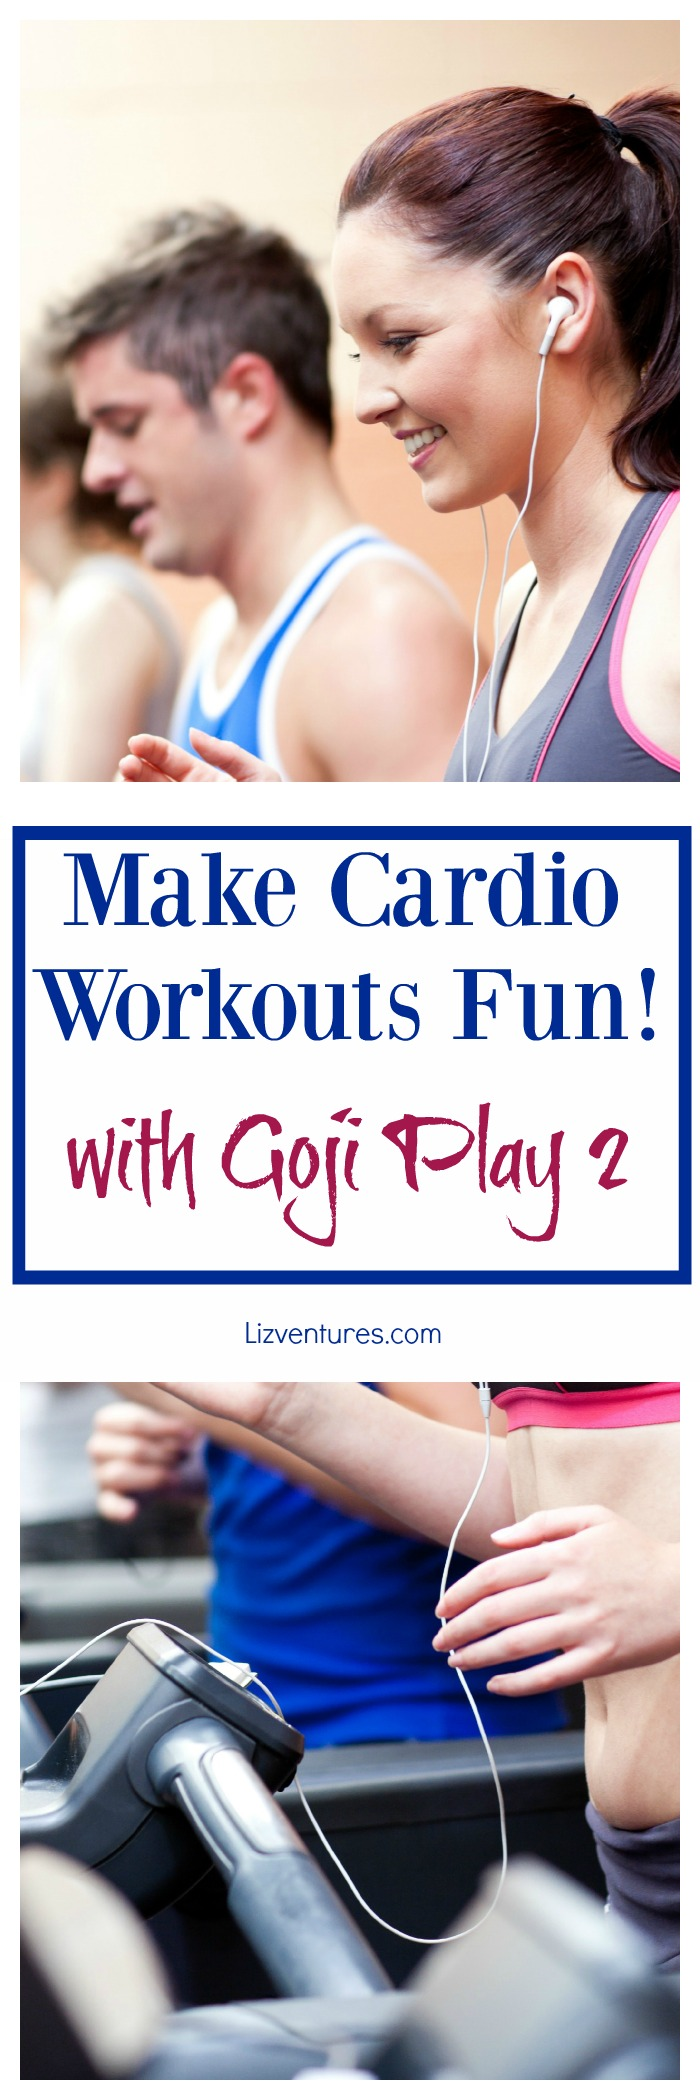 Make Cardio Workouts Fun with Goji Play 2